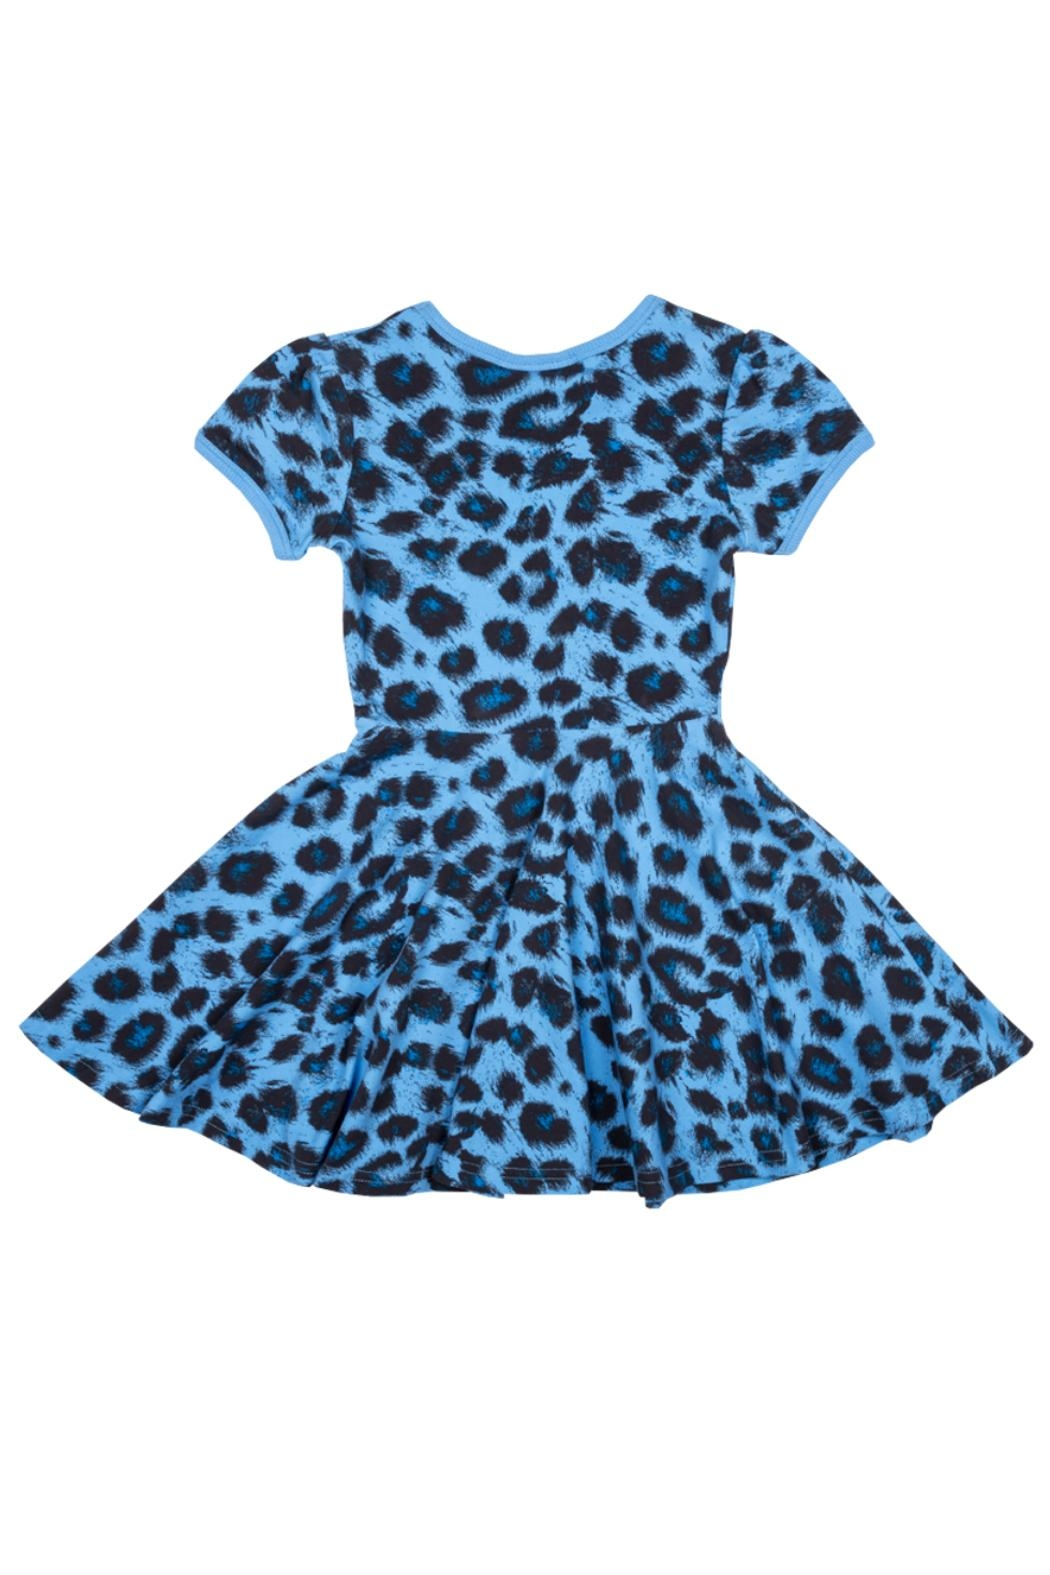 Rock Your Baby Blue Leopard Dress - Front Full Image